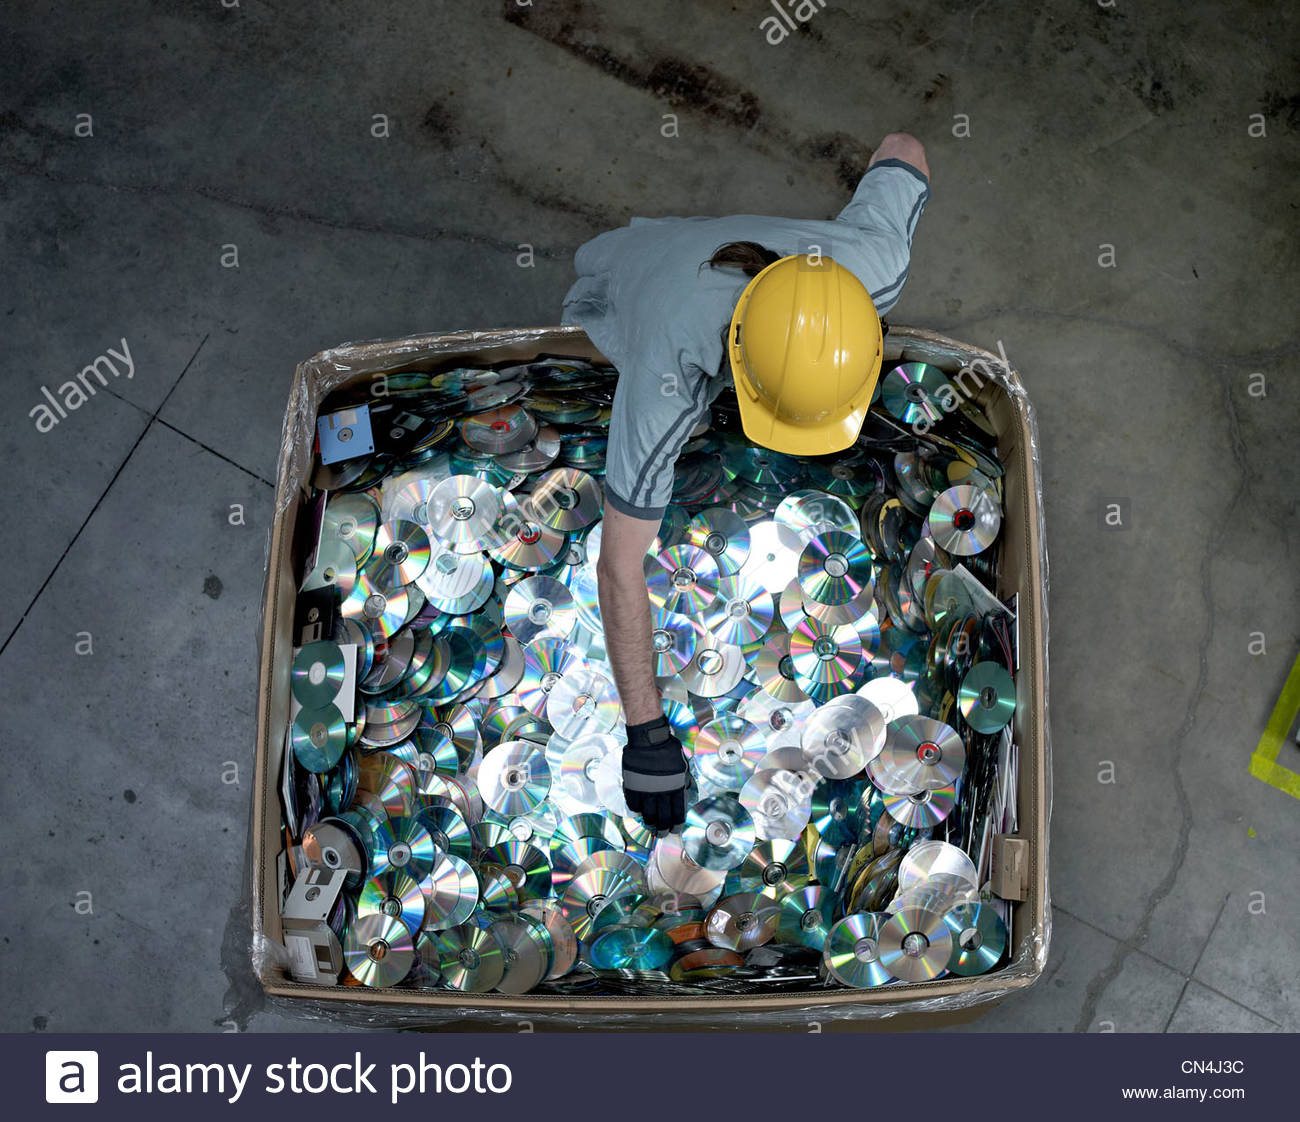 Worker sorting through discs in recycling warehouse - Stock Image